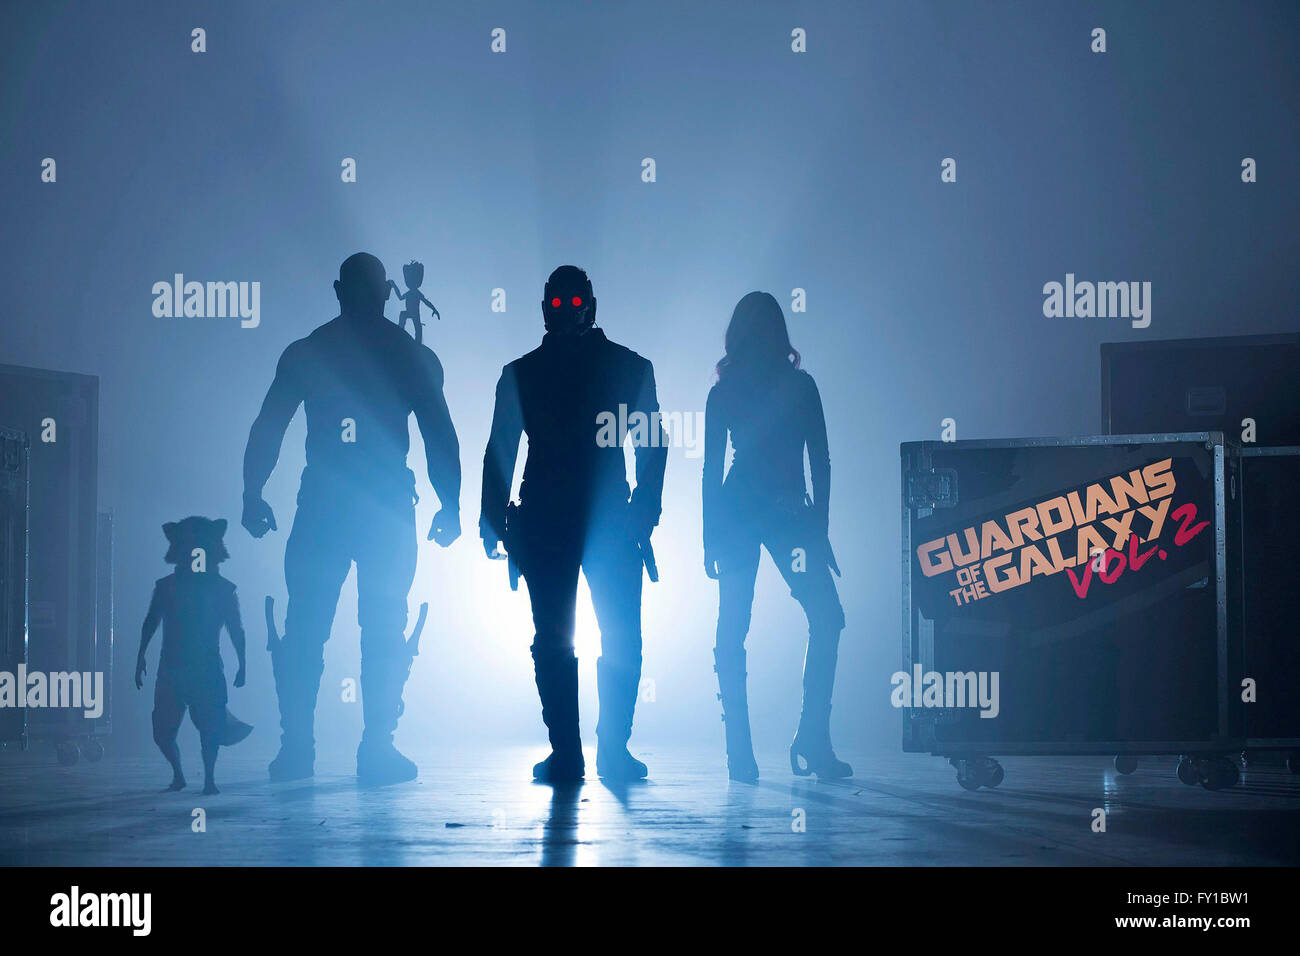 RELEASE DATE: May 5, 2017 TITLE: Guardians Of The Galaxy Vol. 2 STUDIO: Marvel DIRECTOR: James Gunn PLOT: Set to - Stock Image